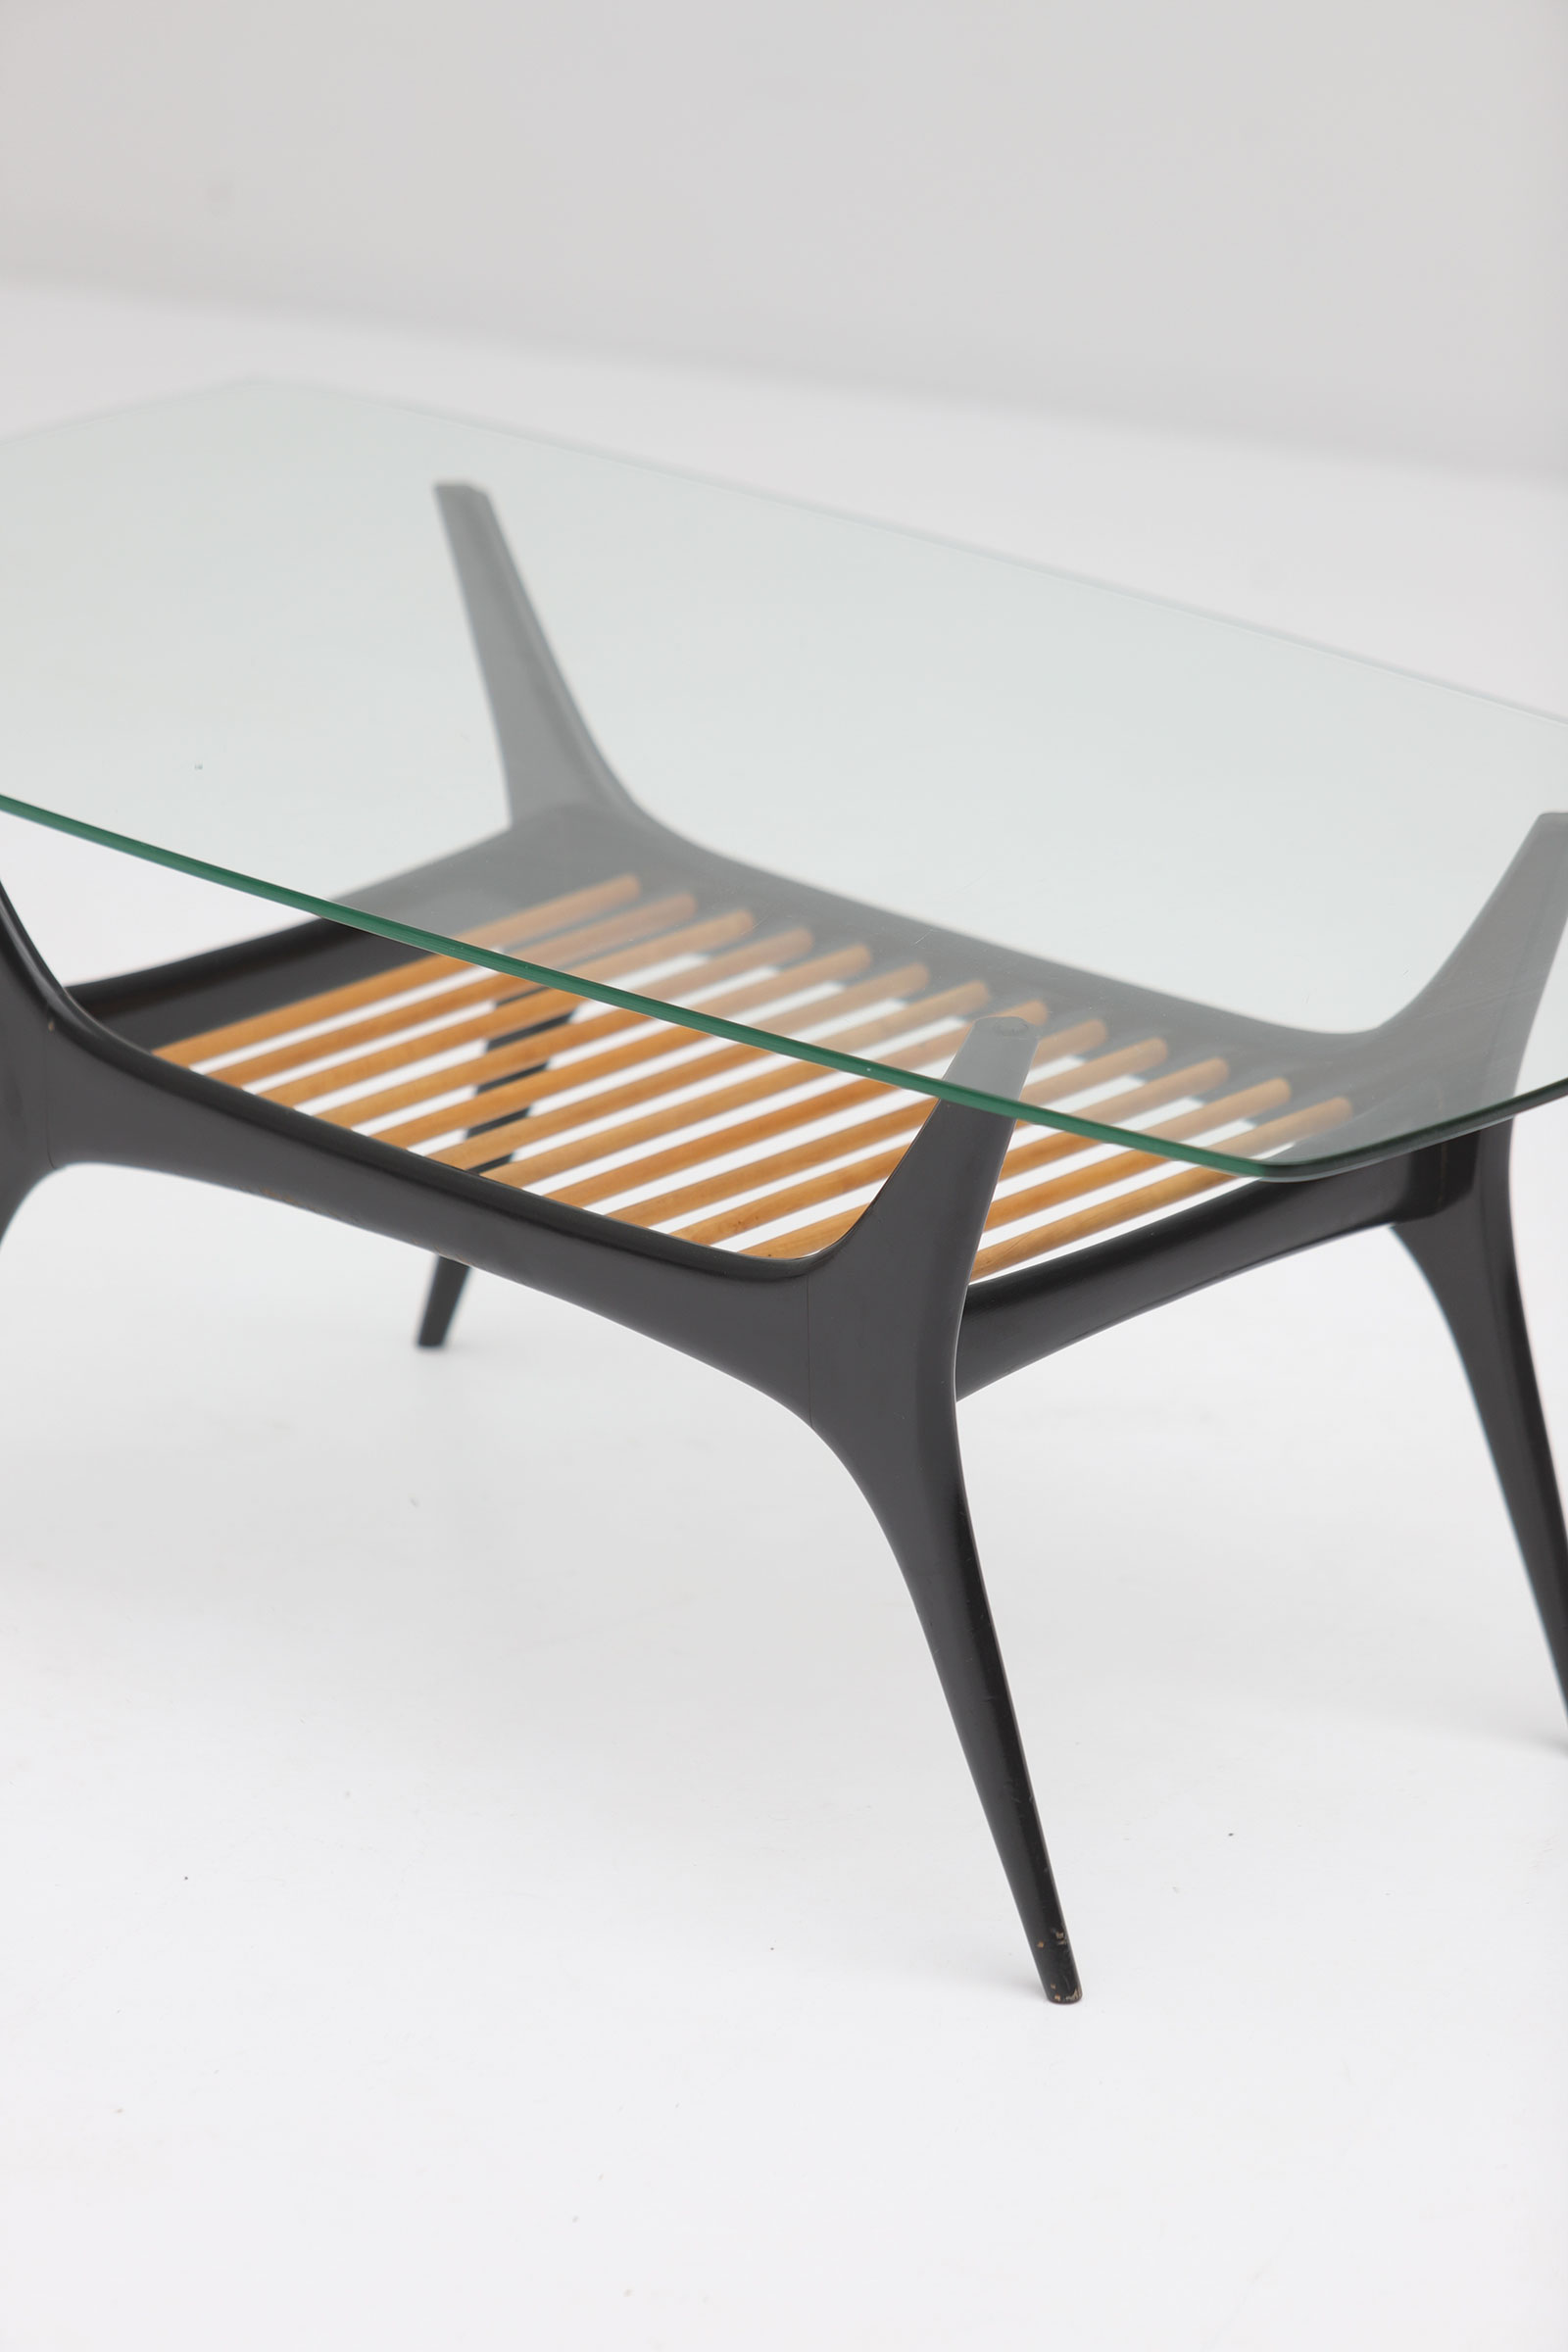 Alfred Hendrickx Coffee Table 1958image 4